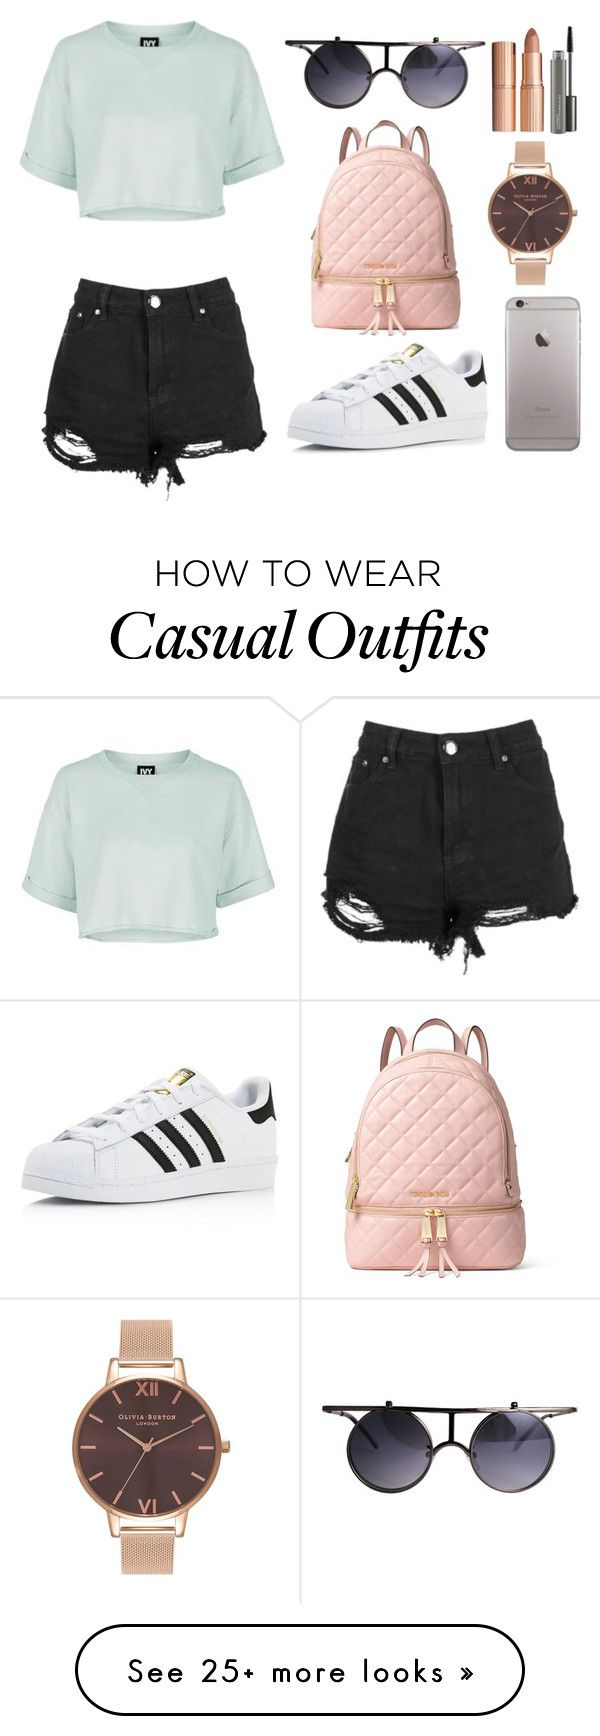 """Casual chick"" by hannahkrinis on Polyvore featuring Topshop, Boohoo, adidas, MICHAEL Michael Kors, Olivia Burton, Charlotte Tilbury and MAC Cosmetics"